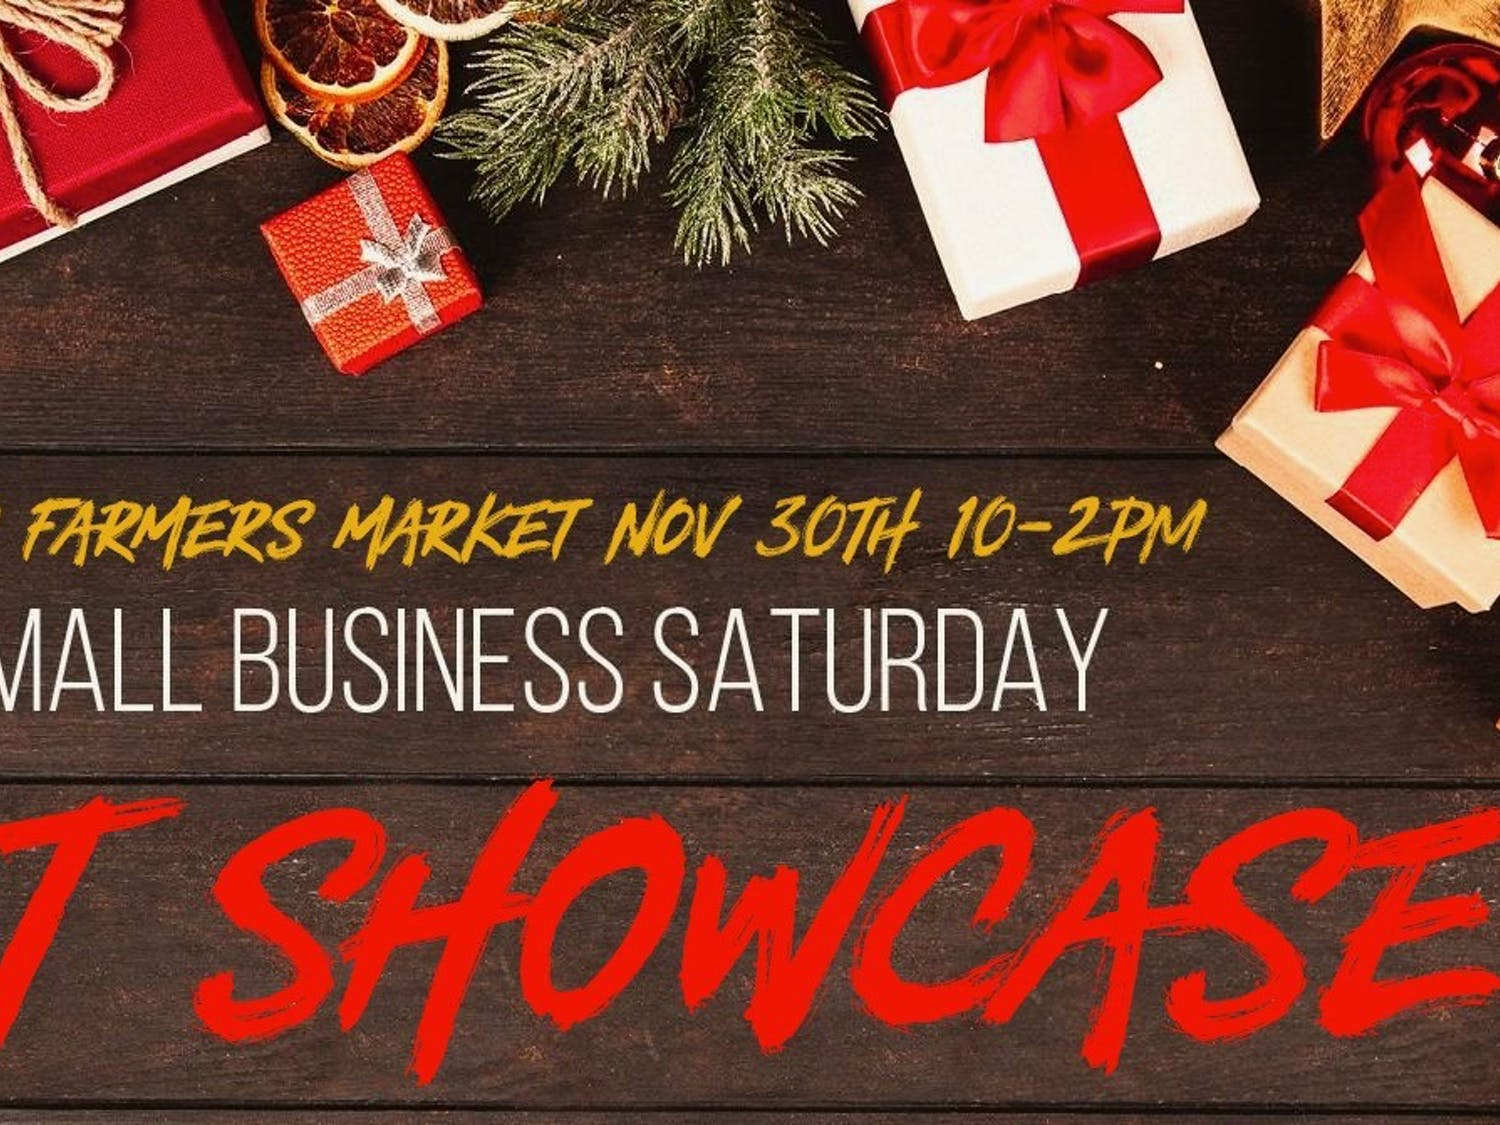 The Eno River Farmers Market first annual Small Business Saturday art showcase will be on Nov. 30. Photo courtesy of Corly Jones.